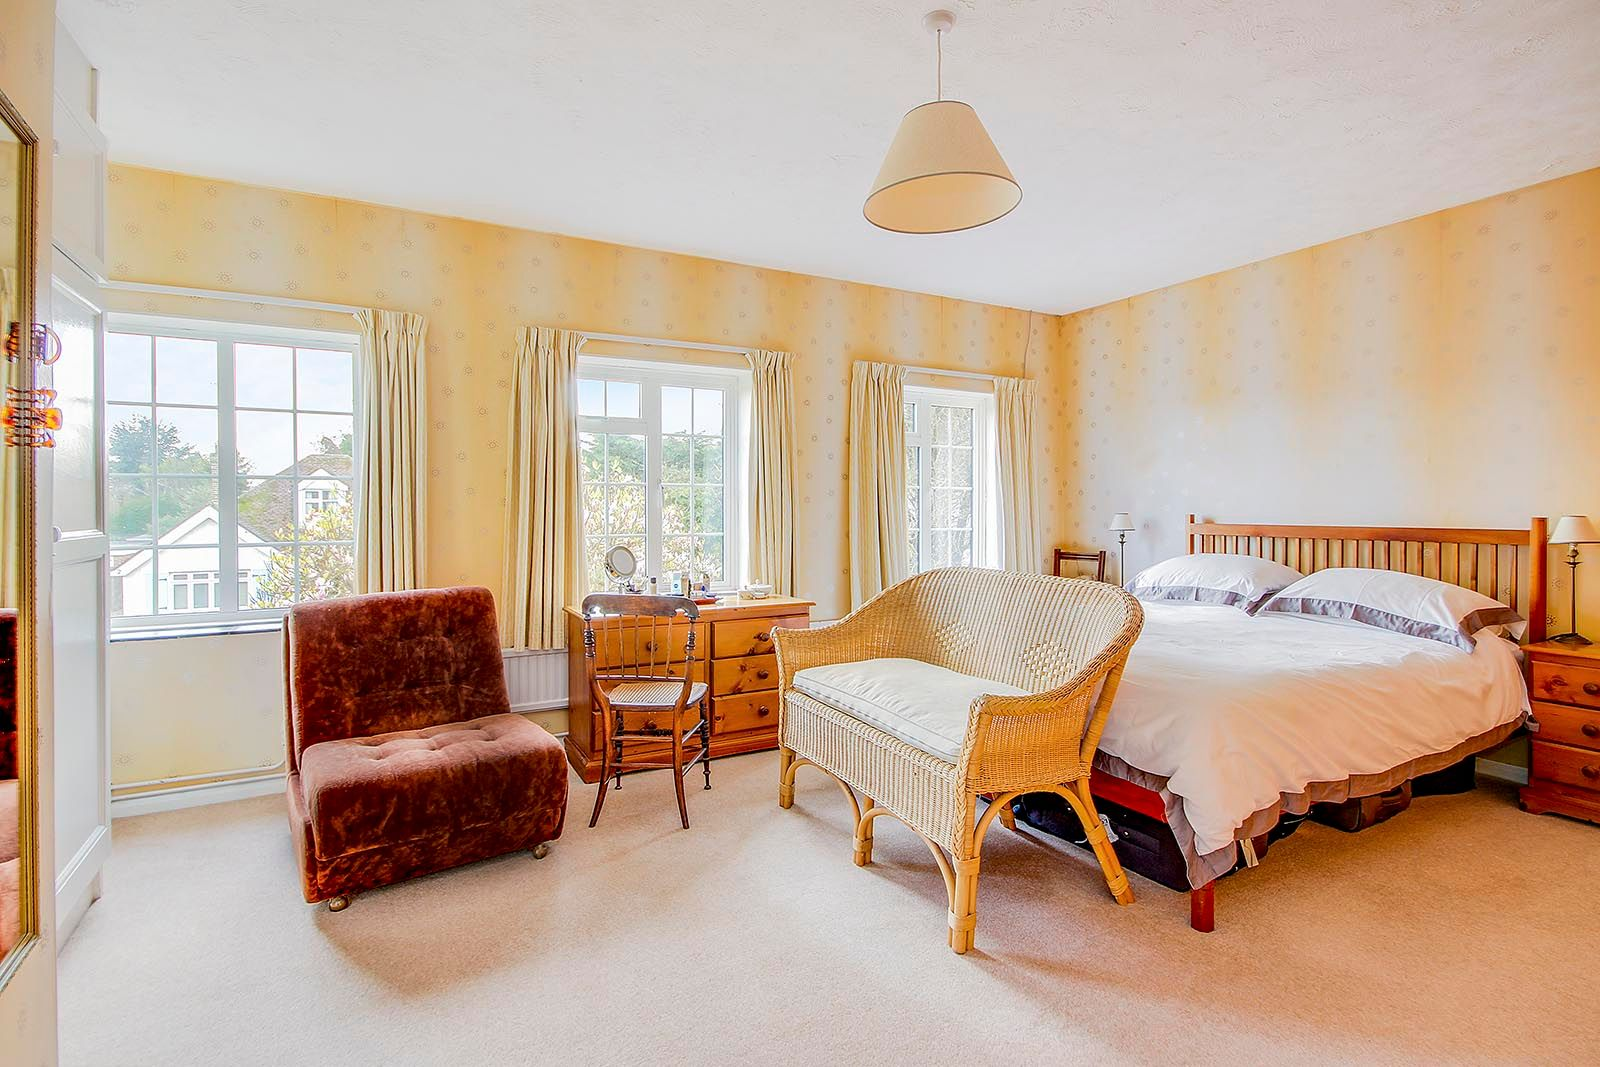 4 bed house for sale in Mill Road (COMP AUG 19) 7